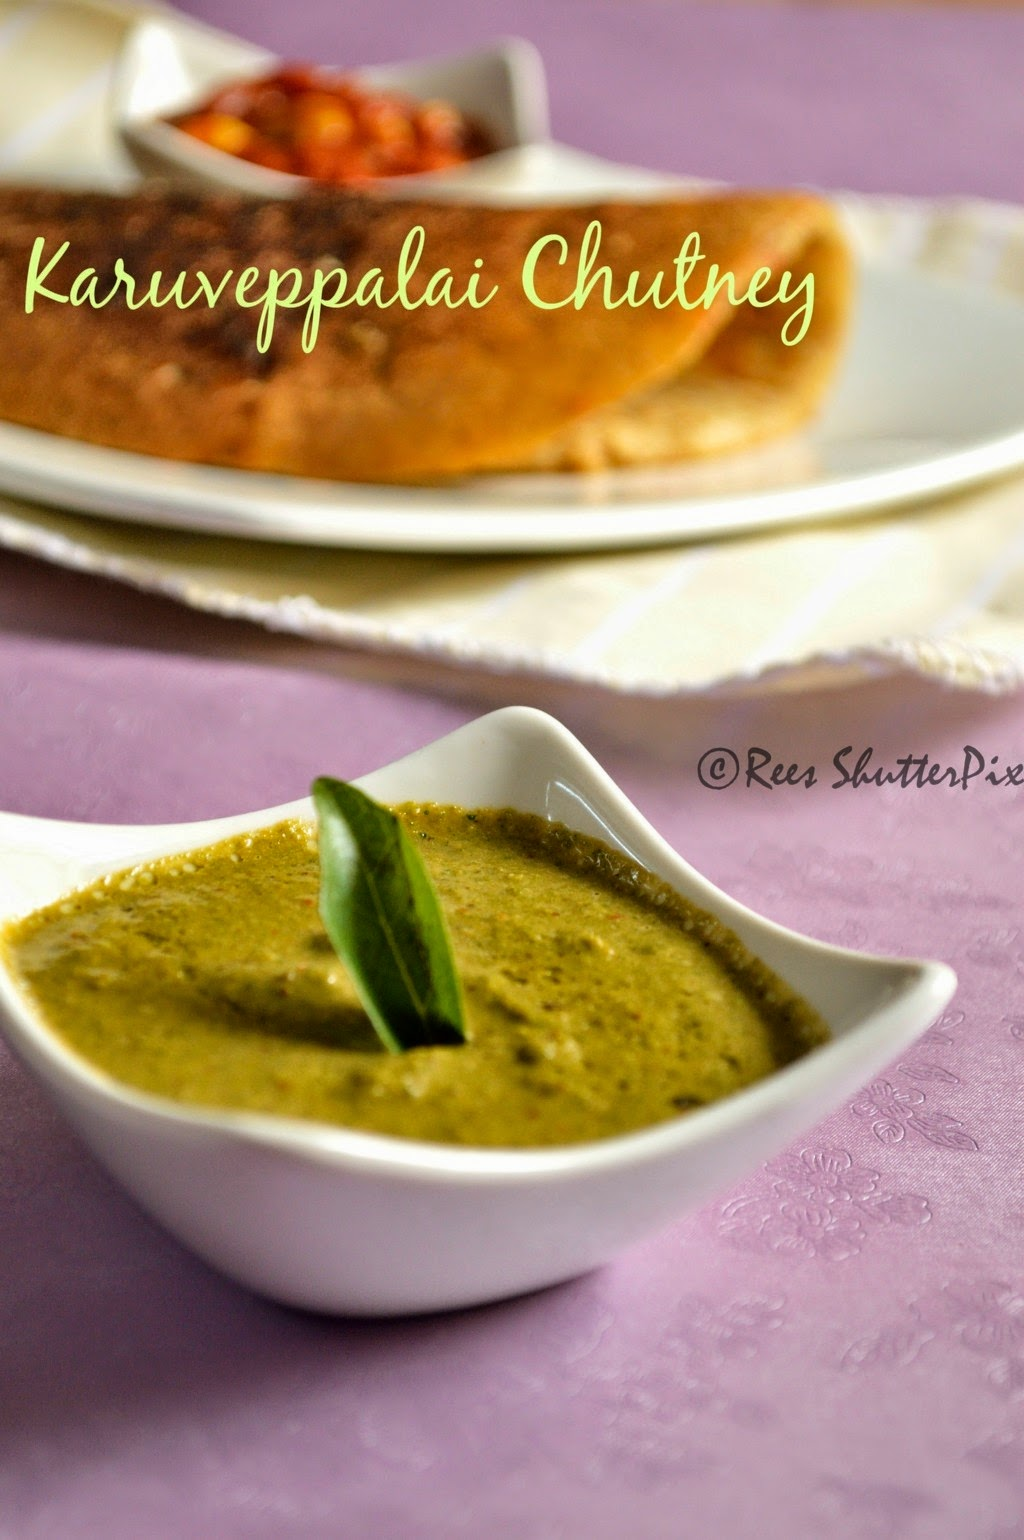 Chutney Varieties, Side dish Recipes,  Curry Leaves Chutney Recipe, Idli Dosa Side Dish Recipes, easy chutney varieties, karuveppalai chutney recipe, curry leaves dips for dosa, homemade chutney recipes, how to make karuveppalai chutney, curry leaves chutney